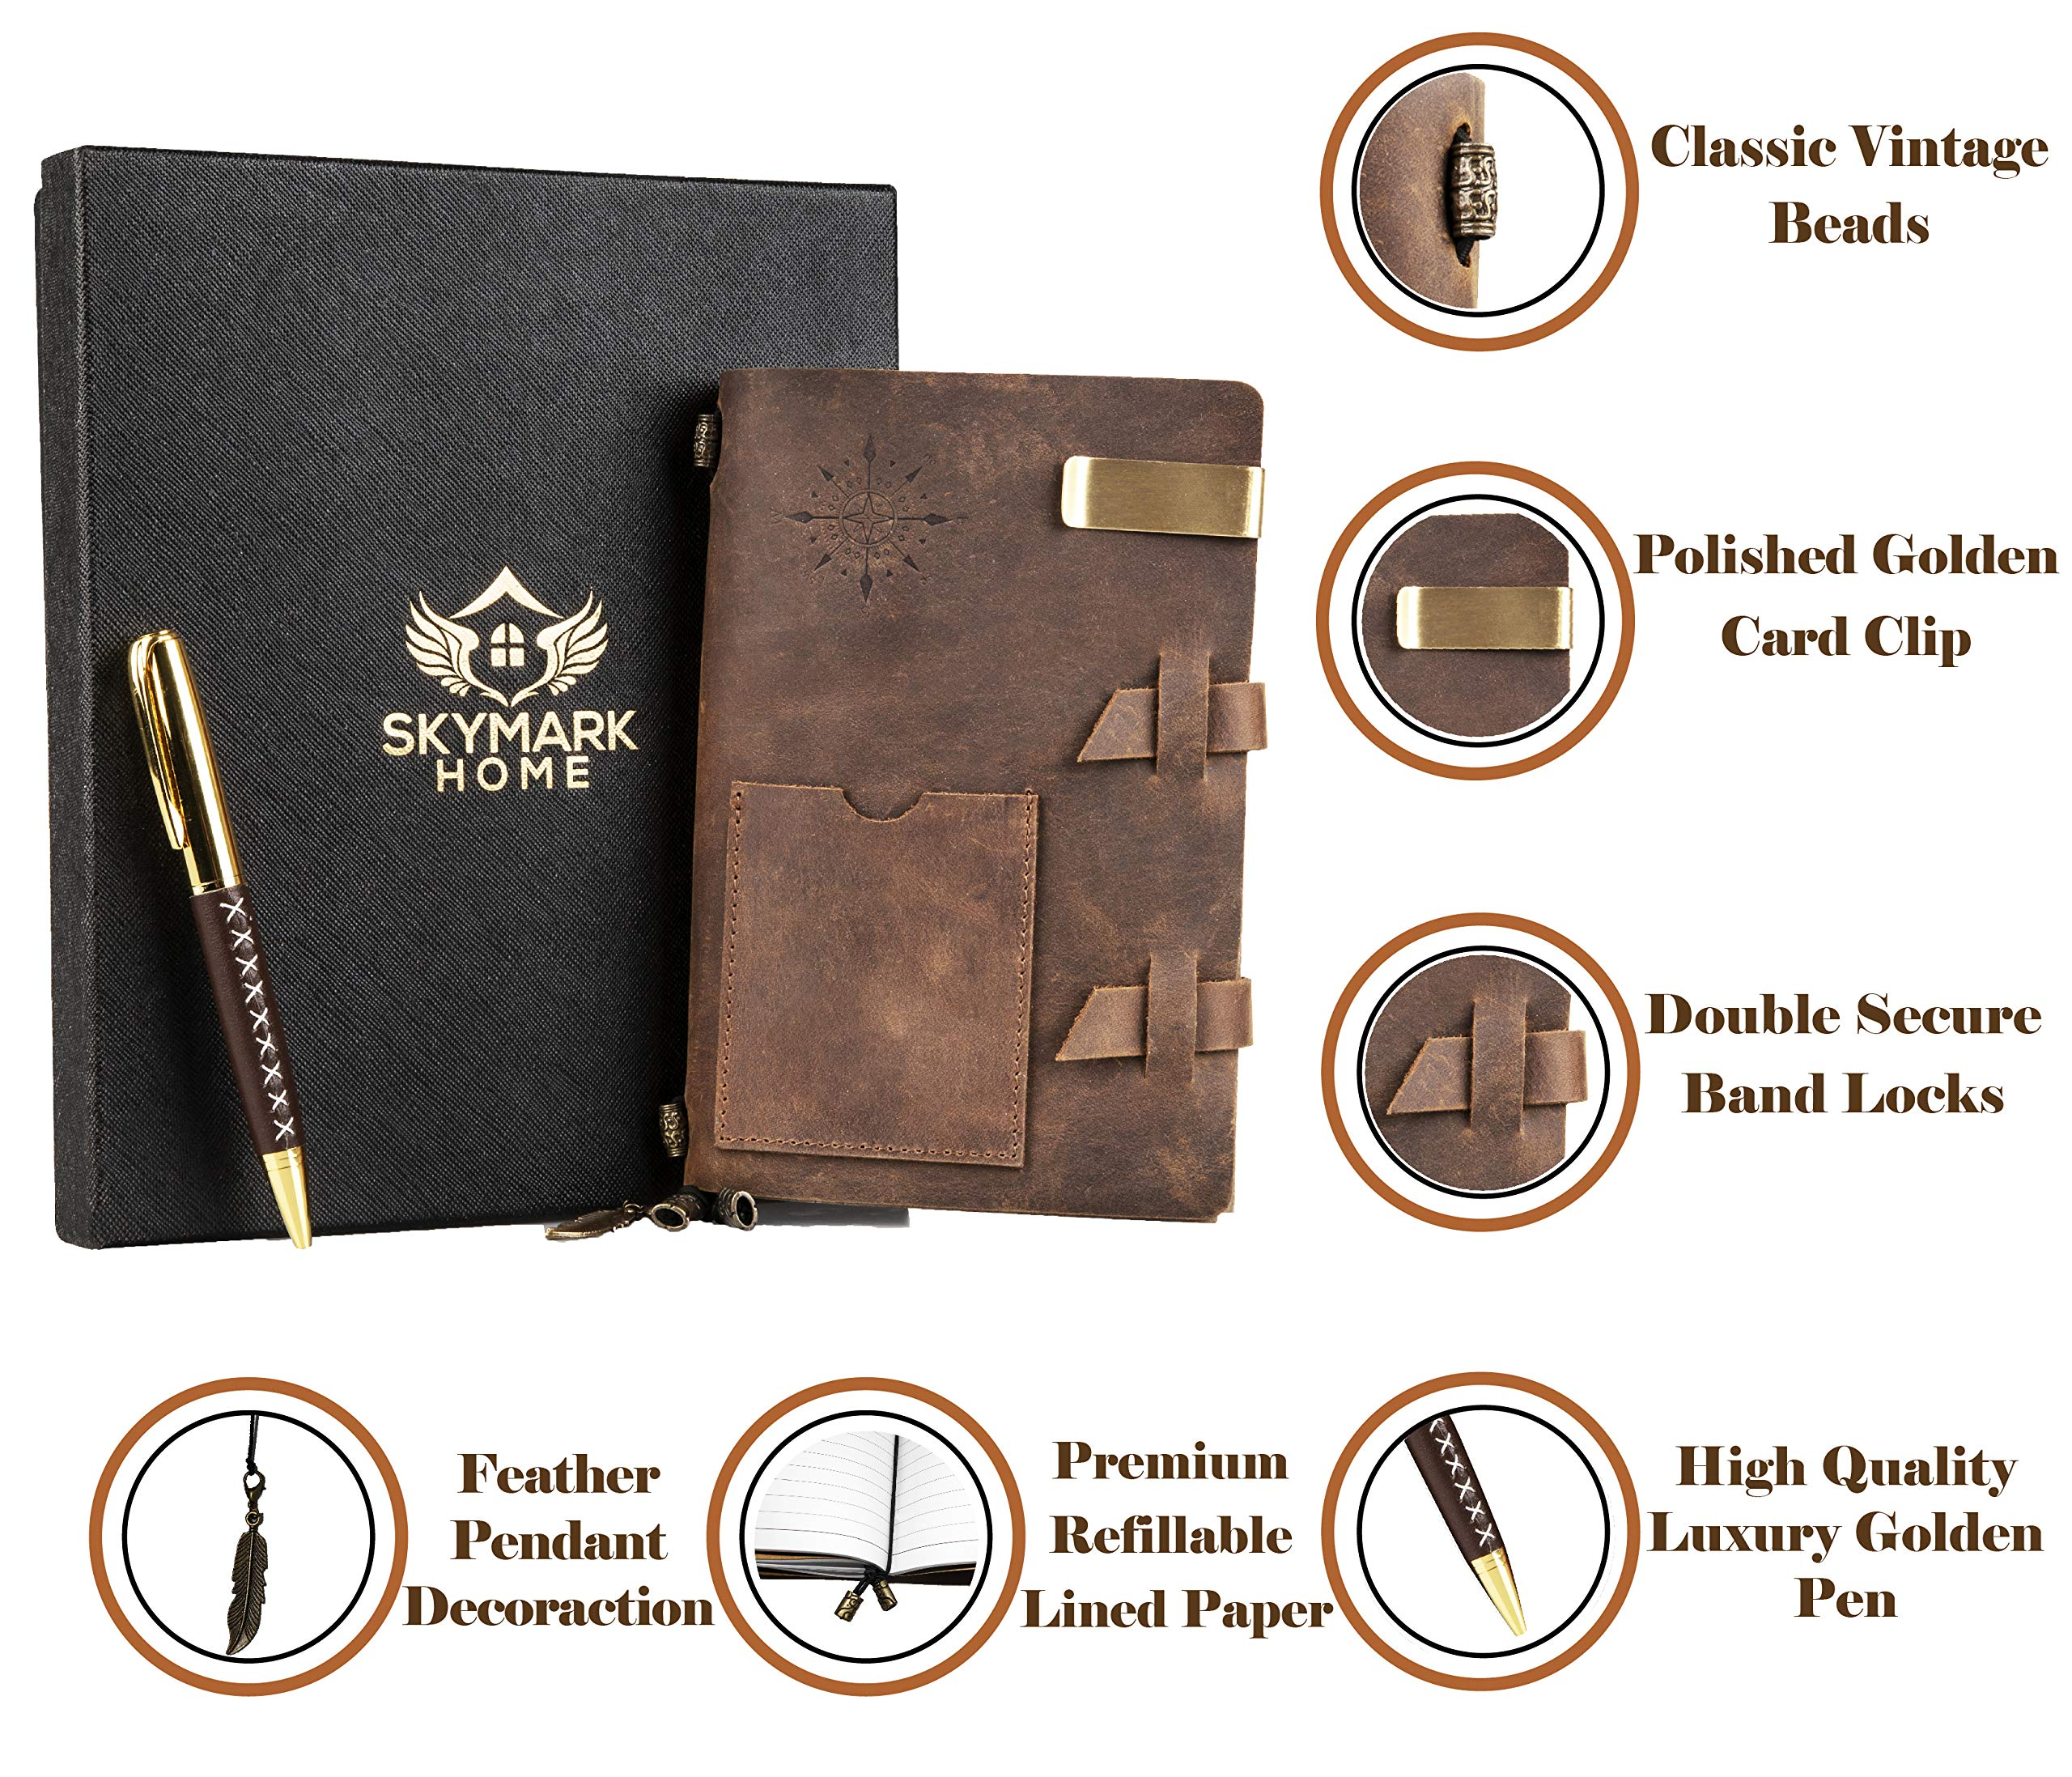 Leather Journal Handmade Travel Notebook - Vintage Antique Diary Writing notepad for men & women, Refillable Lined Paper 7 x 4.8 inches, Luxury Gift Box Set with Golden Classic Pen, Clip, Card holders by Skymark Home (Image #2)